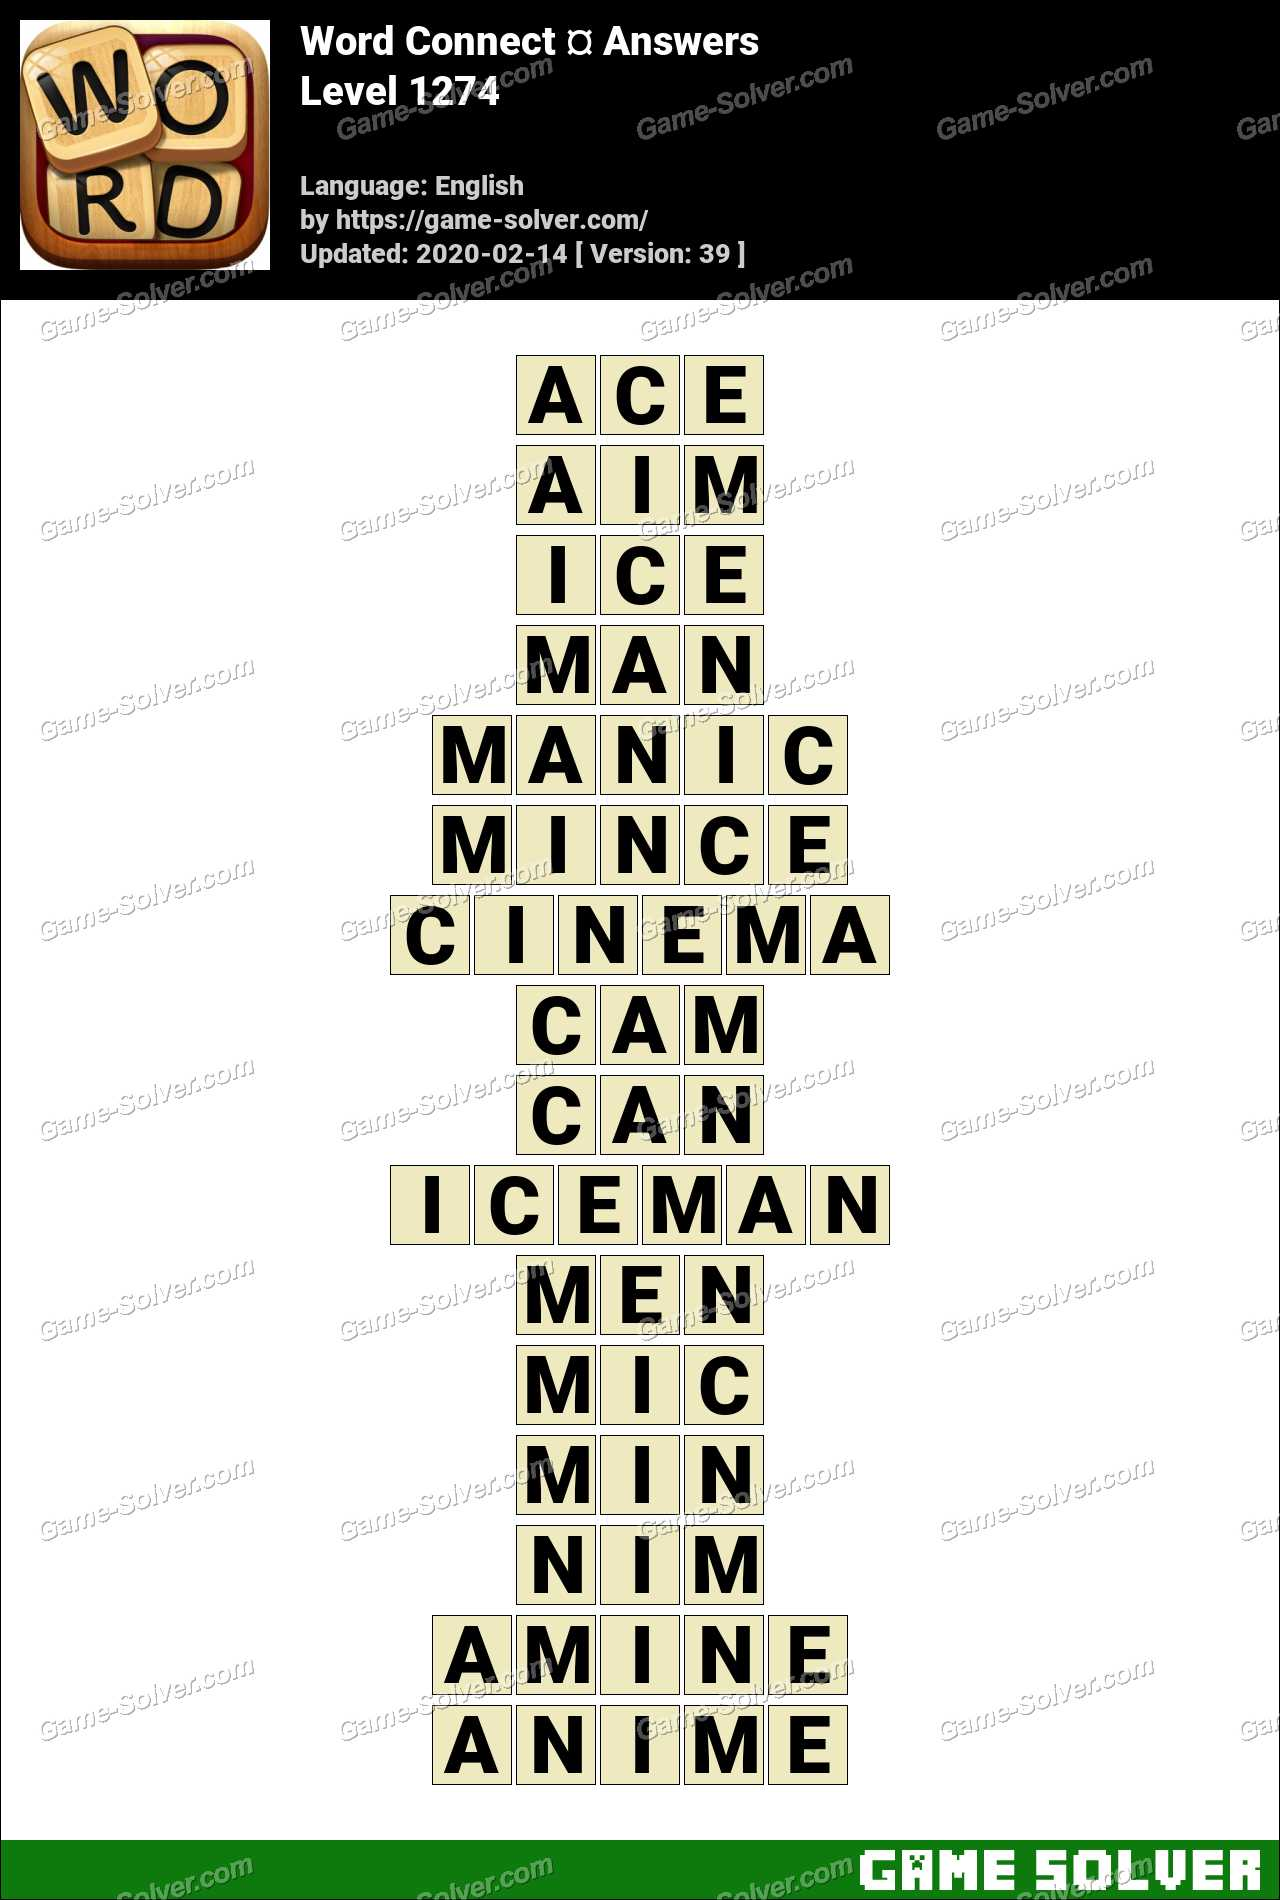 Word Connect Level 1274 Answers